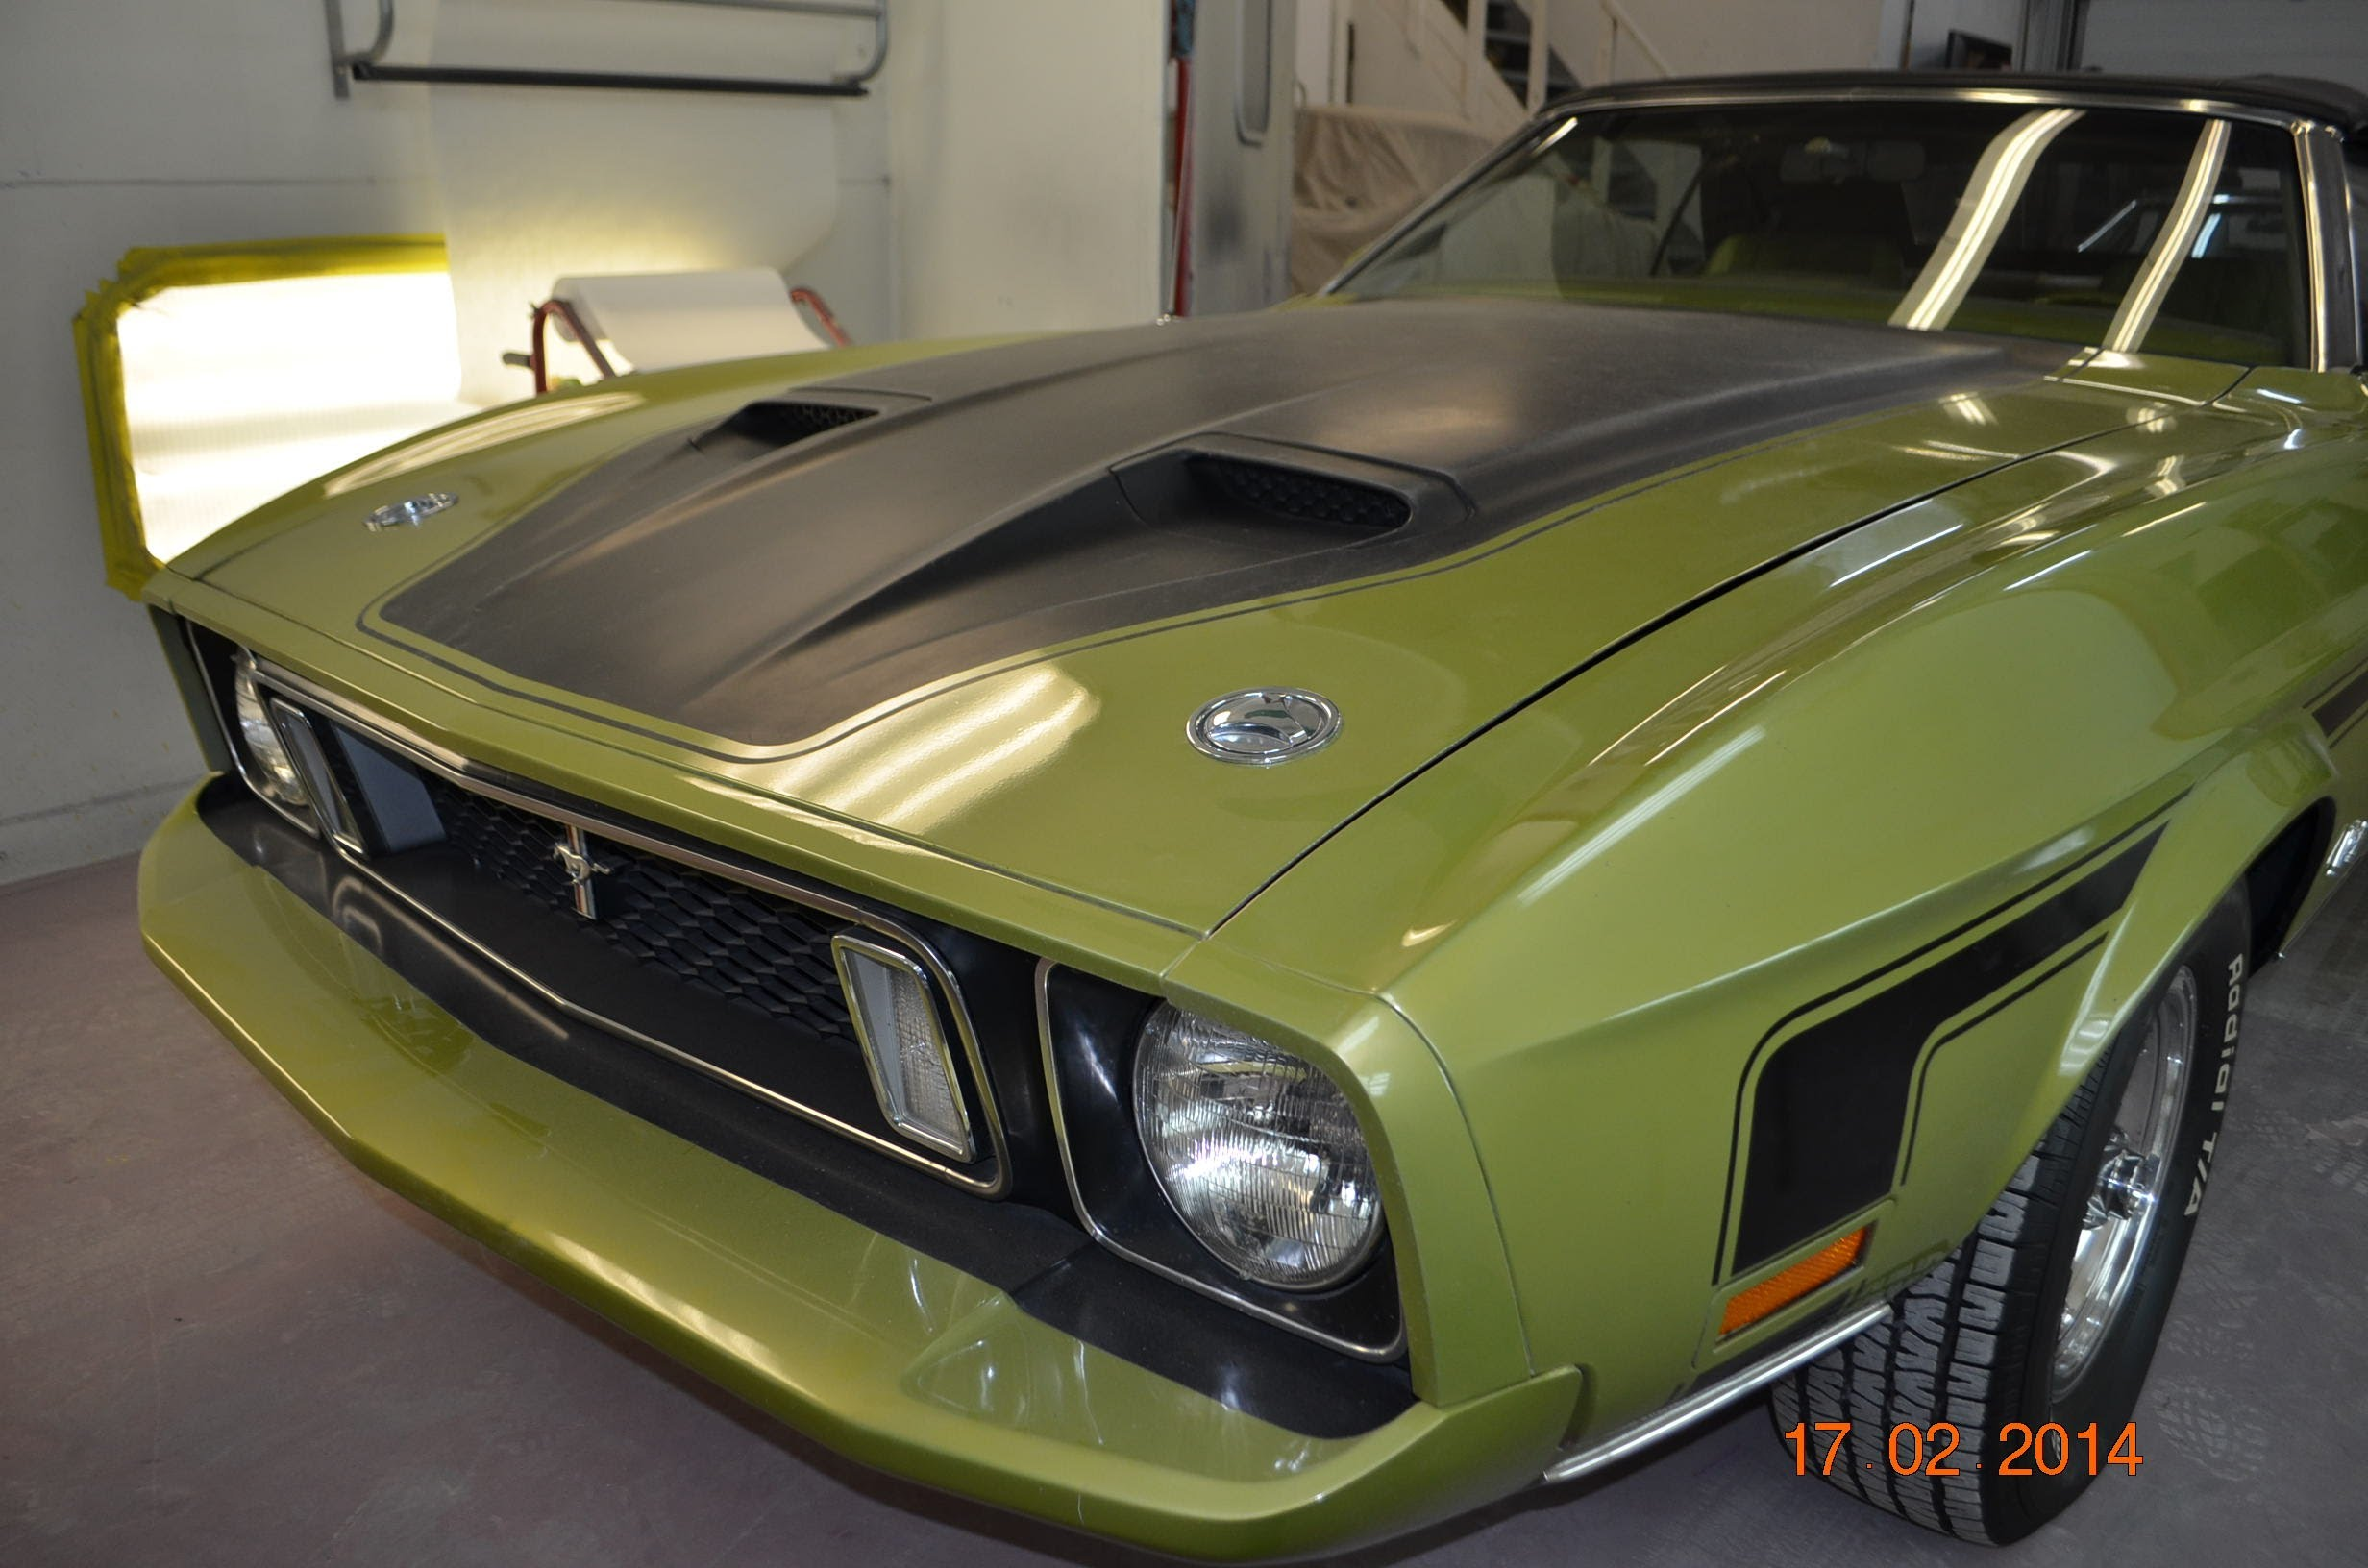 1973 ford mustang convertible for sale auto appraisal ann arbor jackson mi pre purchase inspection